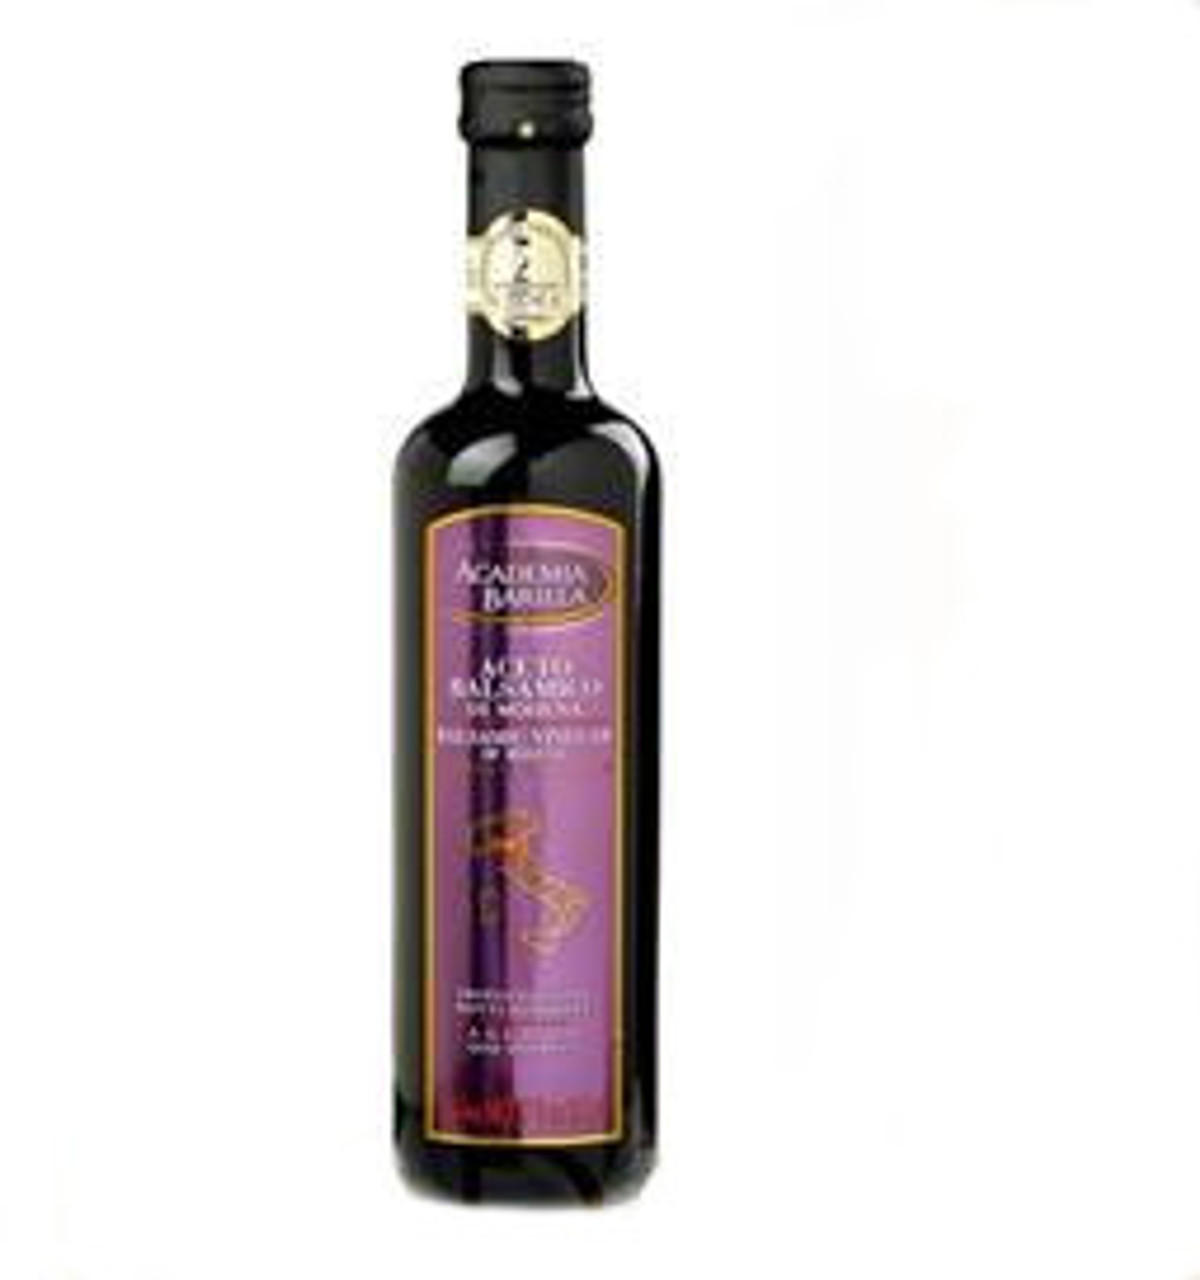 Academia Barilla Balsamic Vinegar of Modena